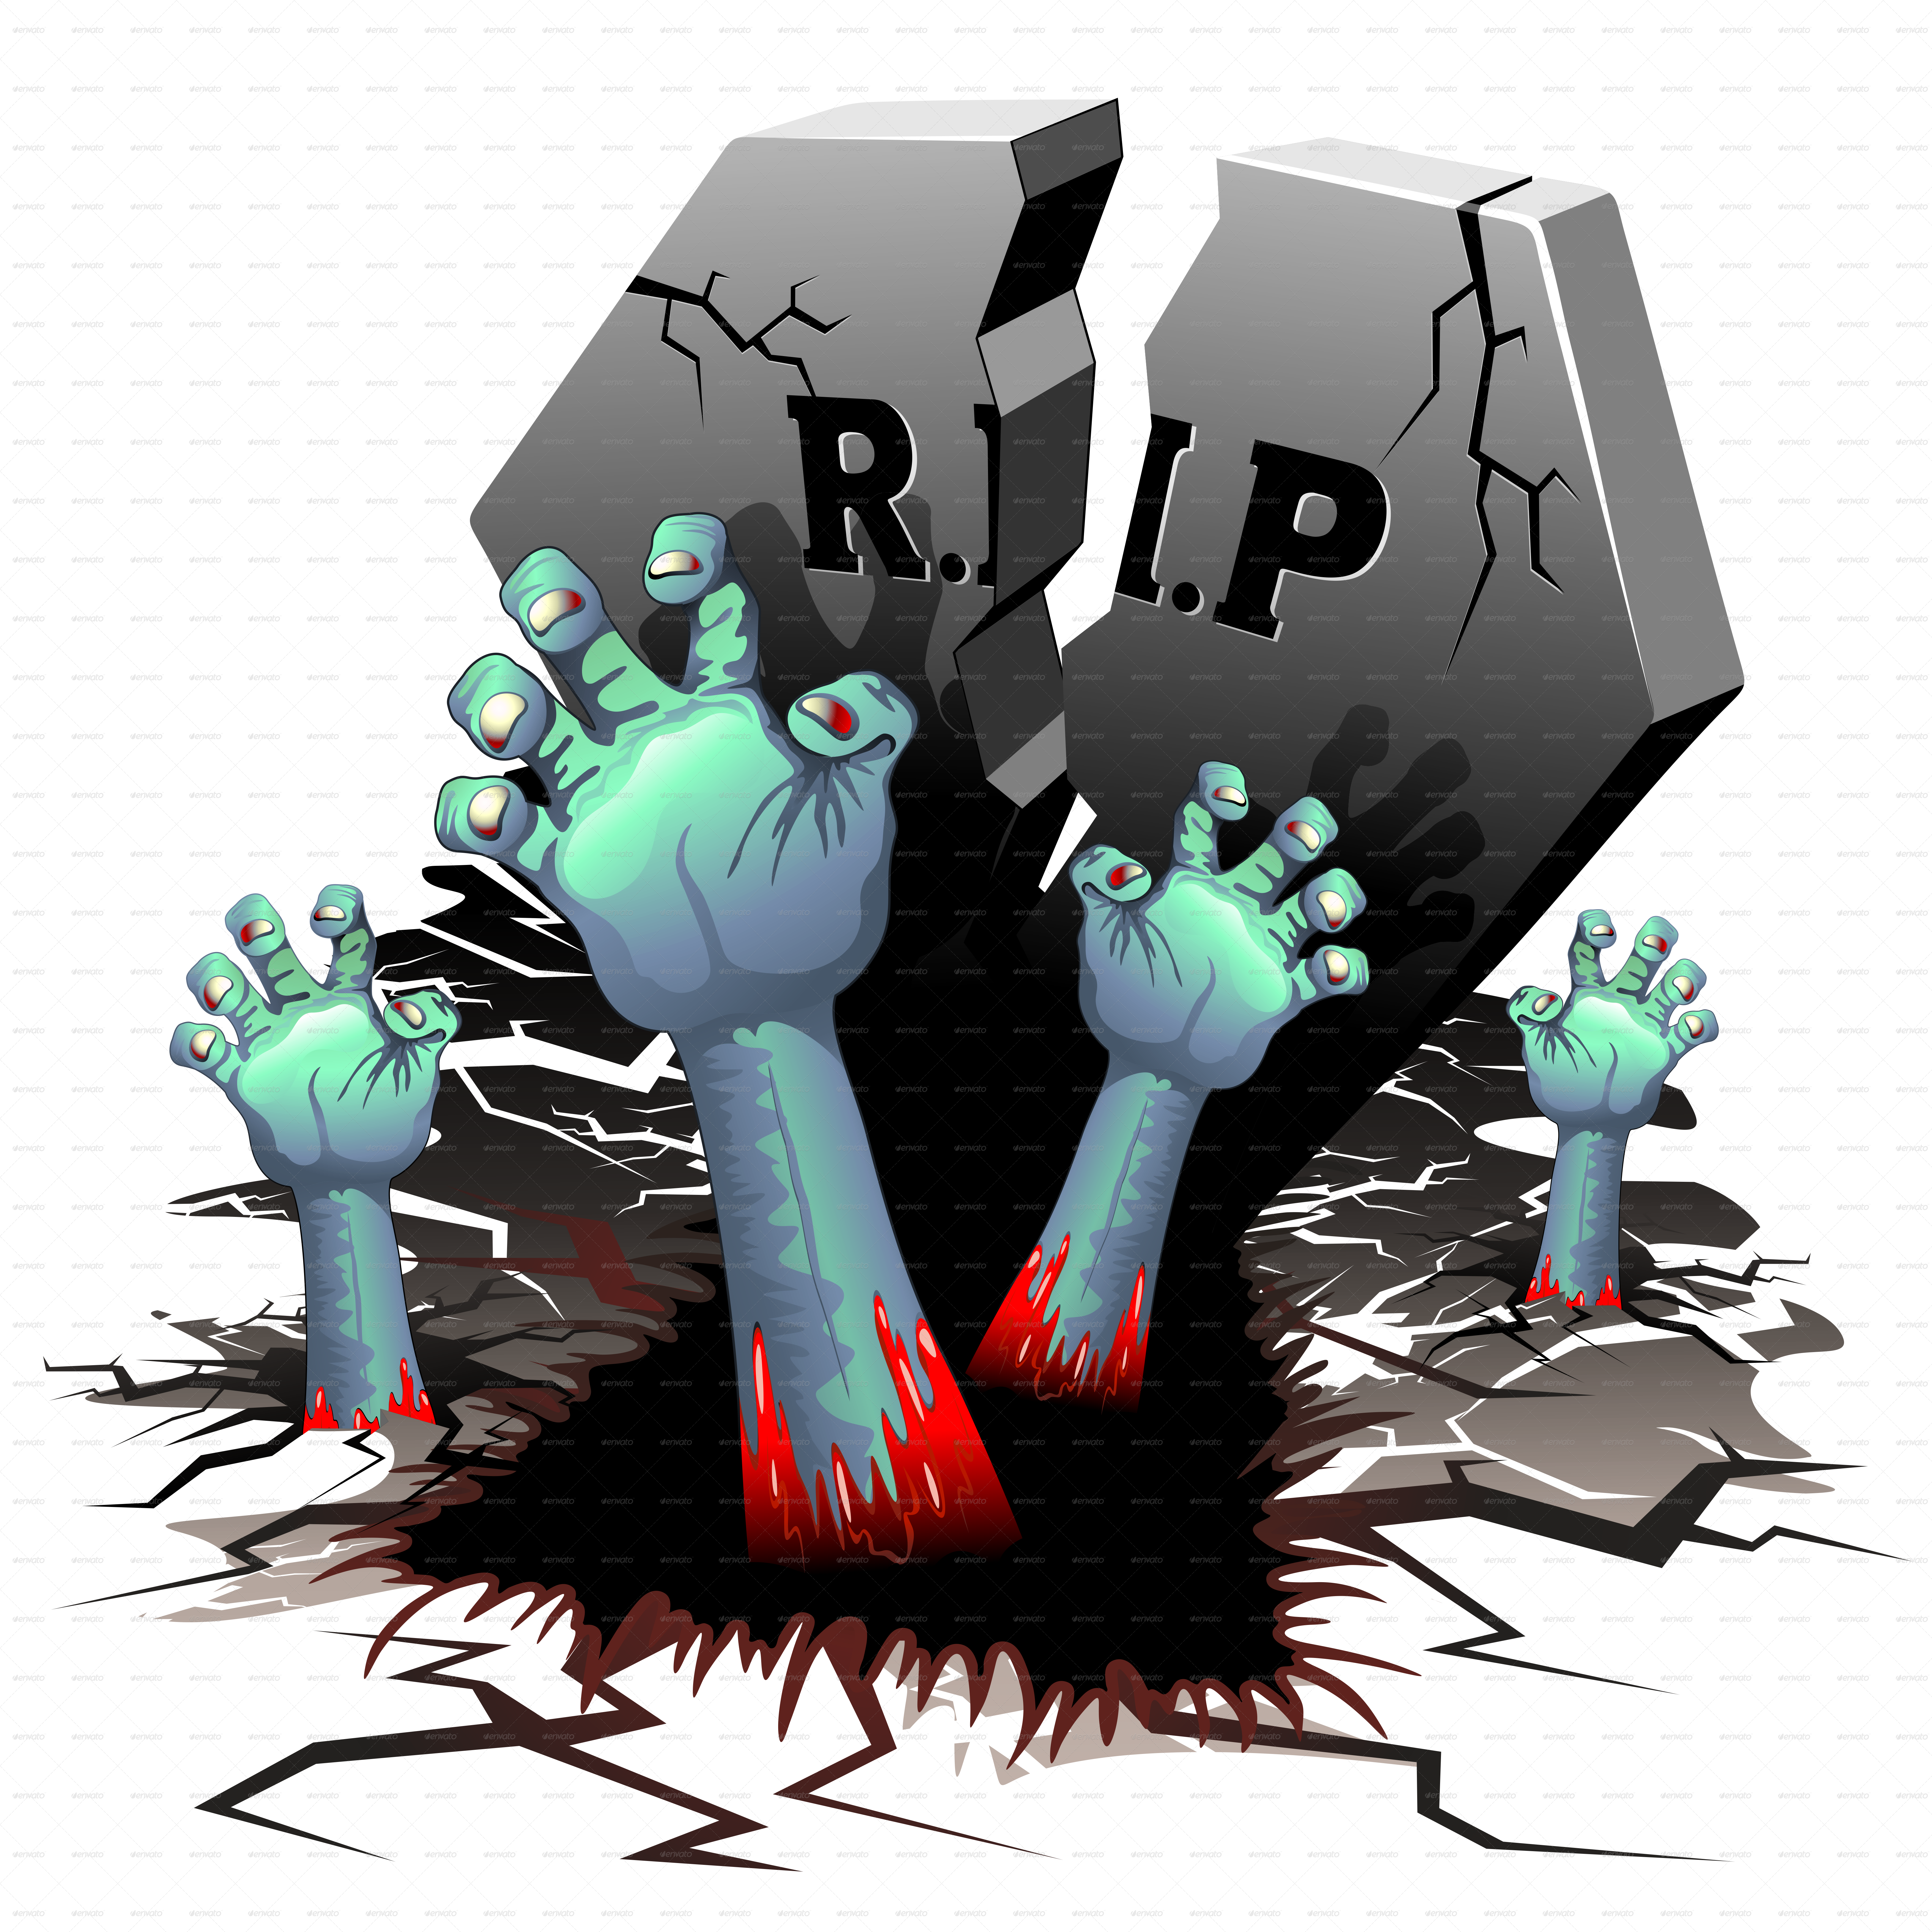 Gravestone Clipart Zombie Gravestone Zombie Transparent Free For Download On Webstockreview 2020 To get more templates about posters,flyers,brochures,card,mockup,logo,video,sound,ppt,word,please visit pikbest.com. webstockreview